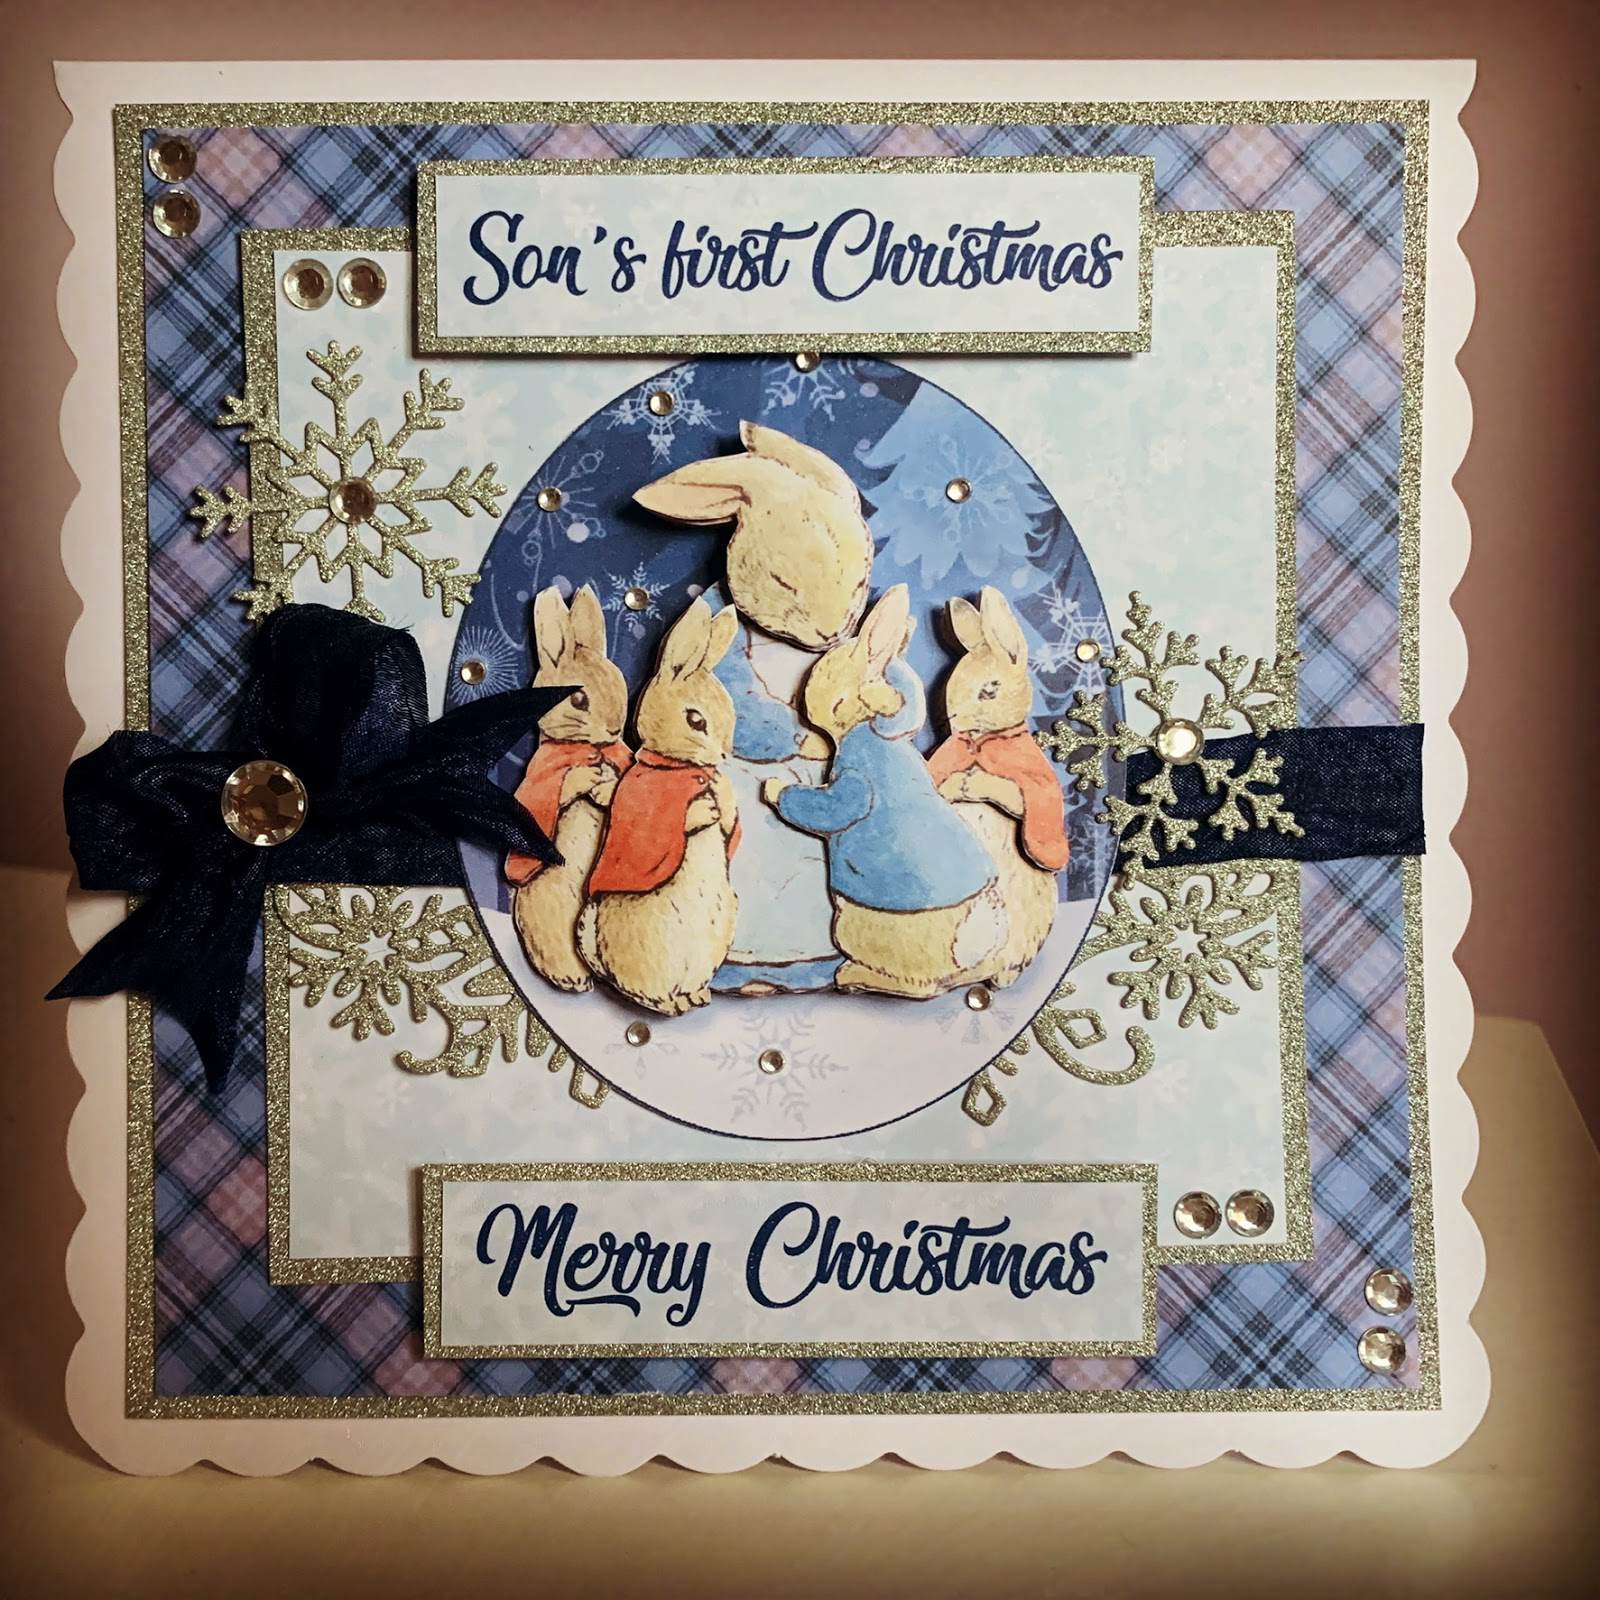 Peter Rabbit son's first Christmas card image